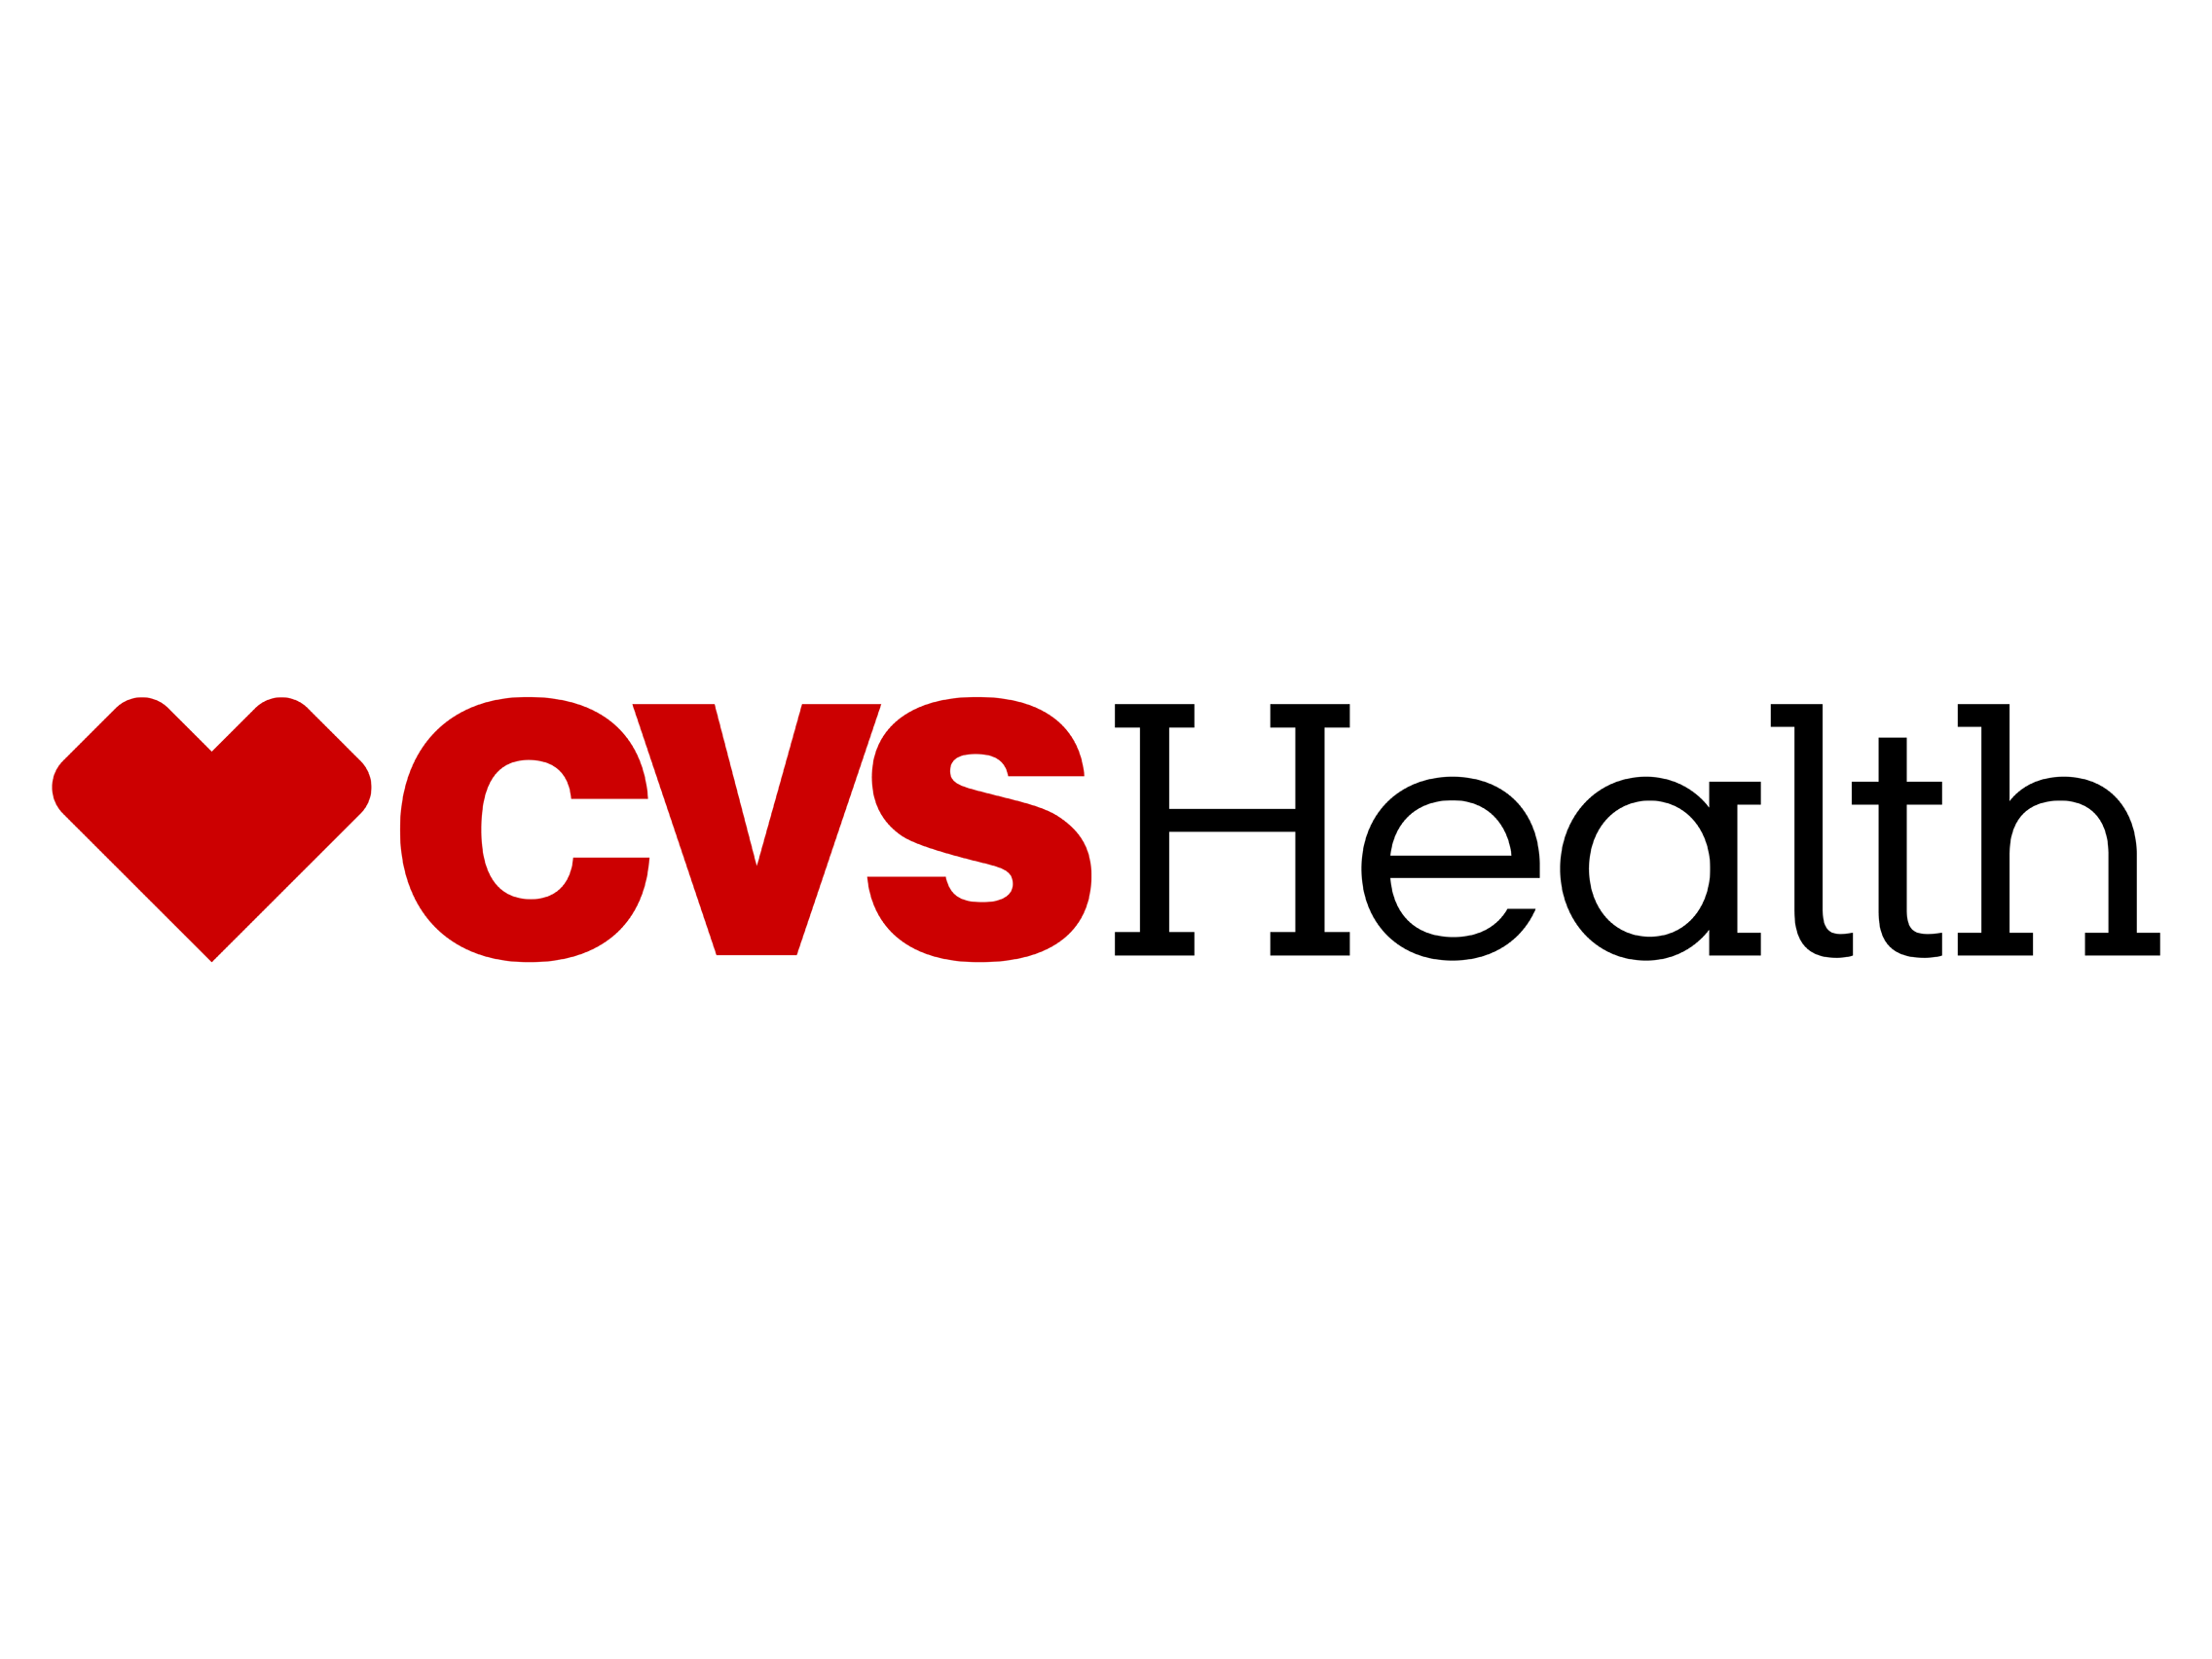 cvs health logo logotype